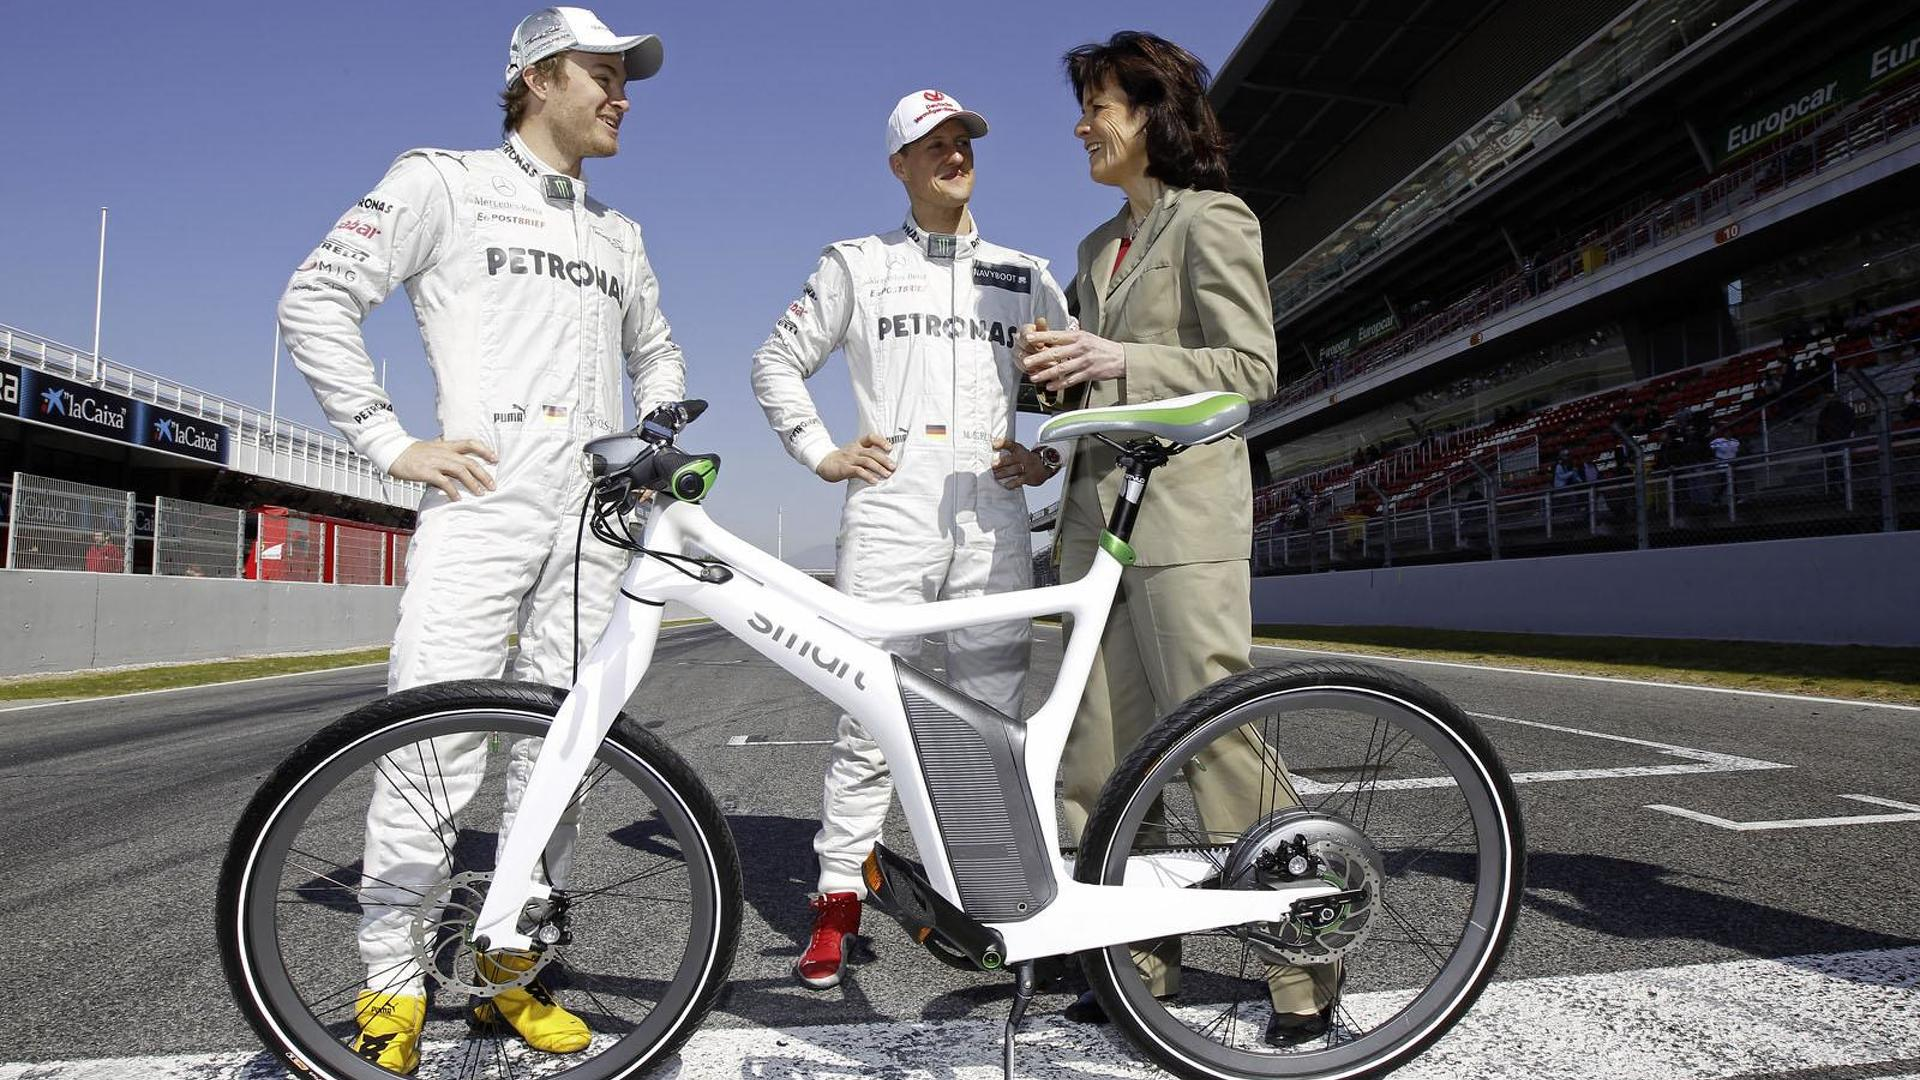 Michael Schumacher and Nico Rosberg get the first Smart ebikes